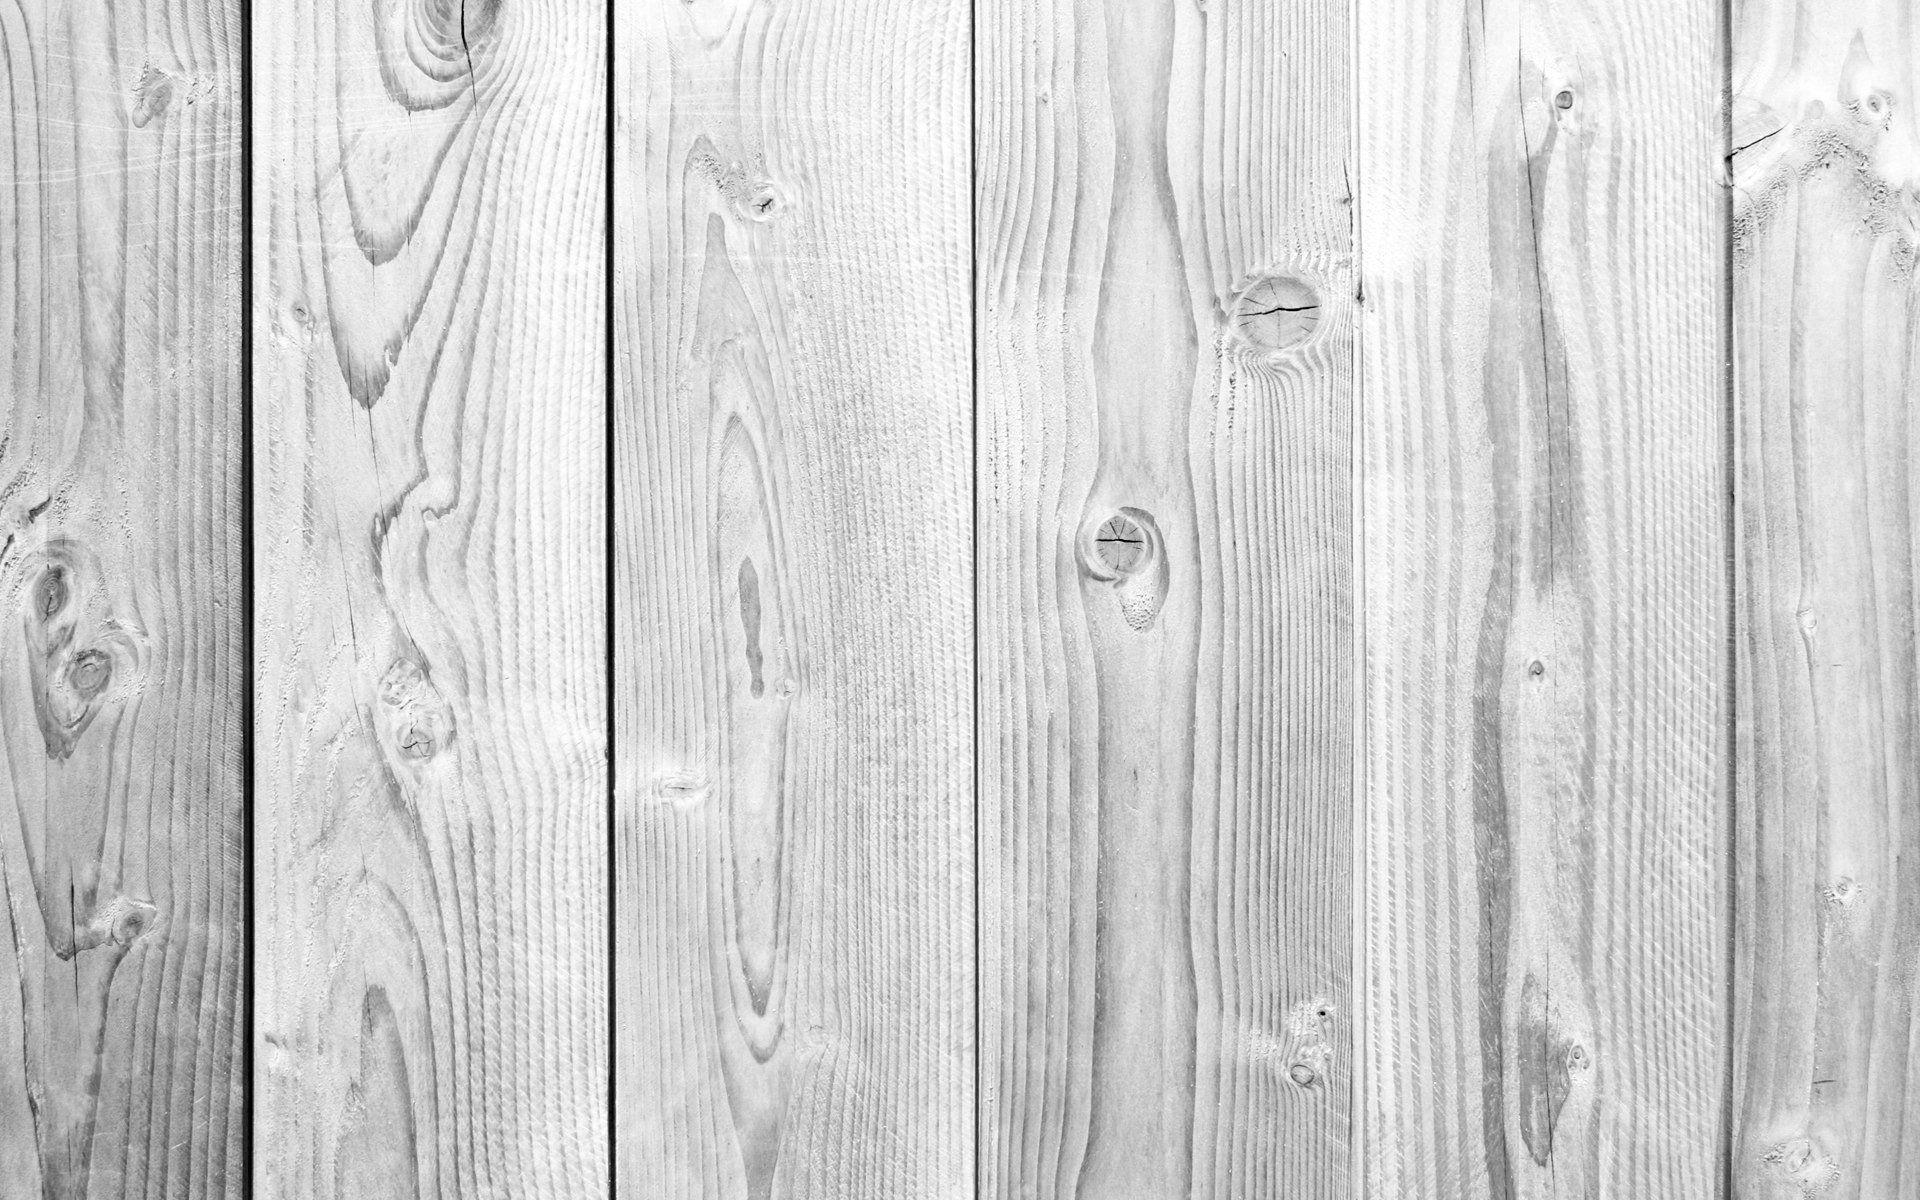 White Wood Wall Texture Wallpaper Free Images At Clker